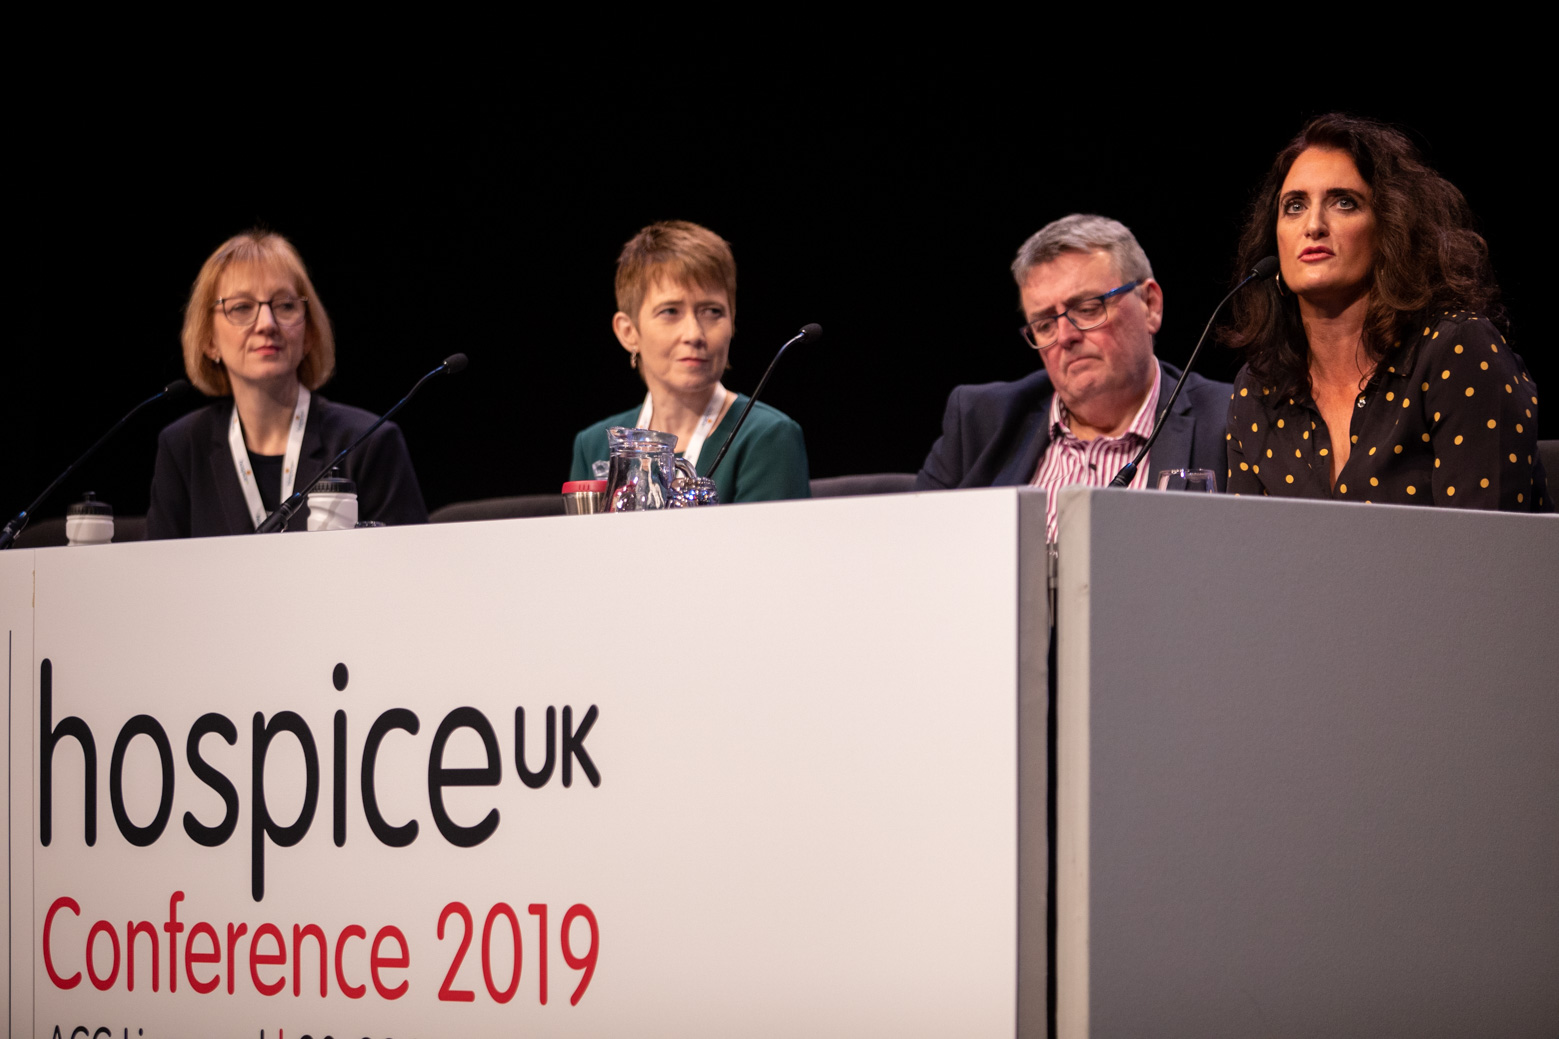 Hospice UK National Conference 2019: Brand & reputation, and the importance of strategic alliances